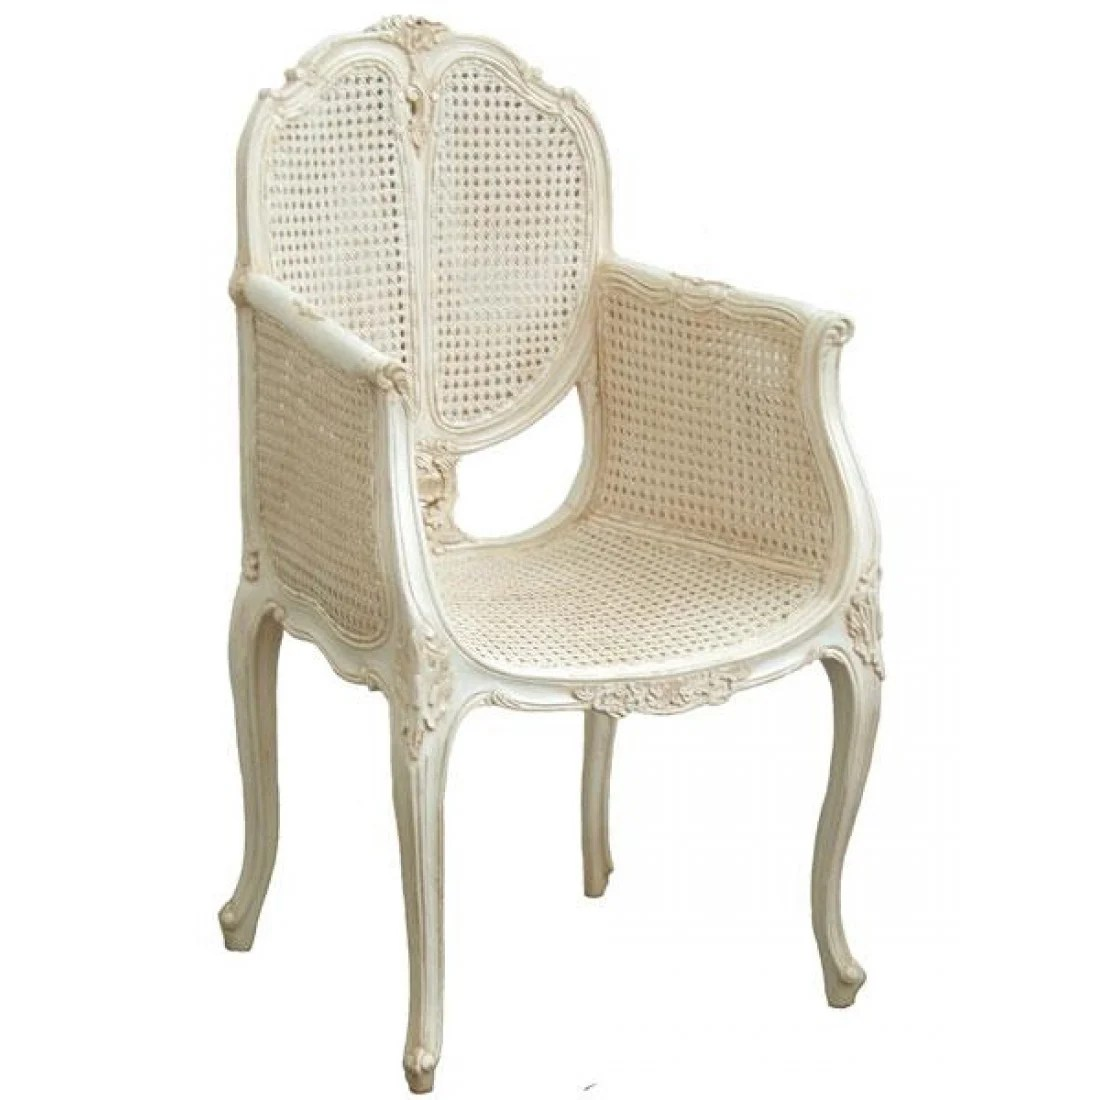 White Rattan Chair Bedroom Chair With Rattan French Chair French Bedroom